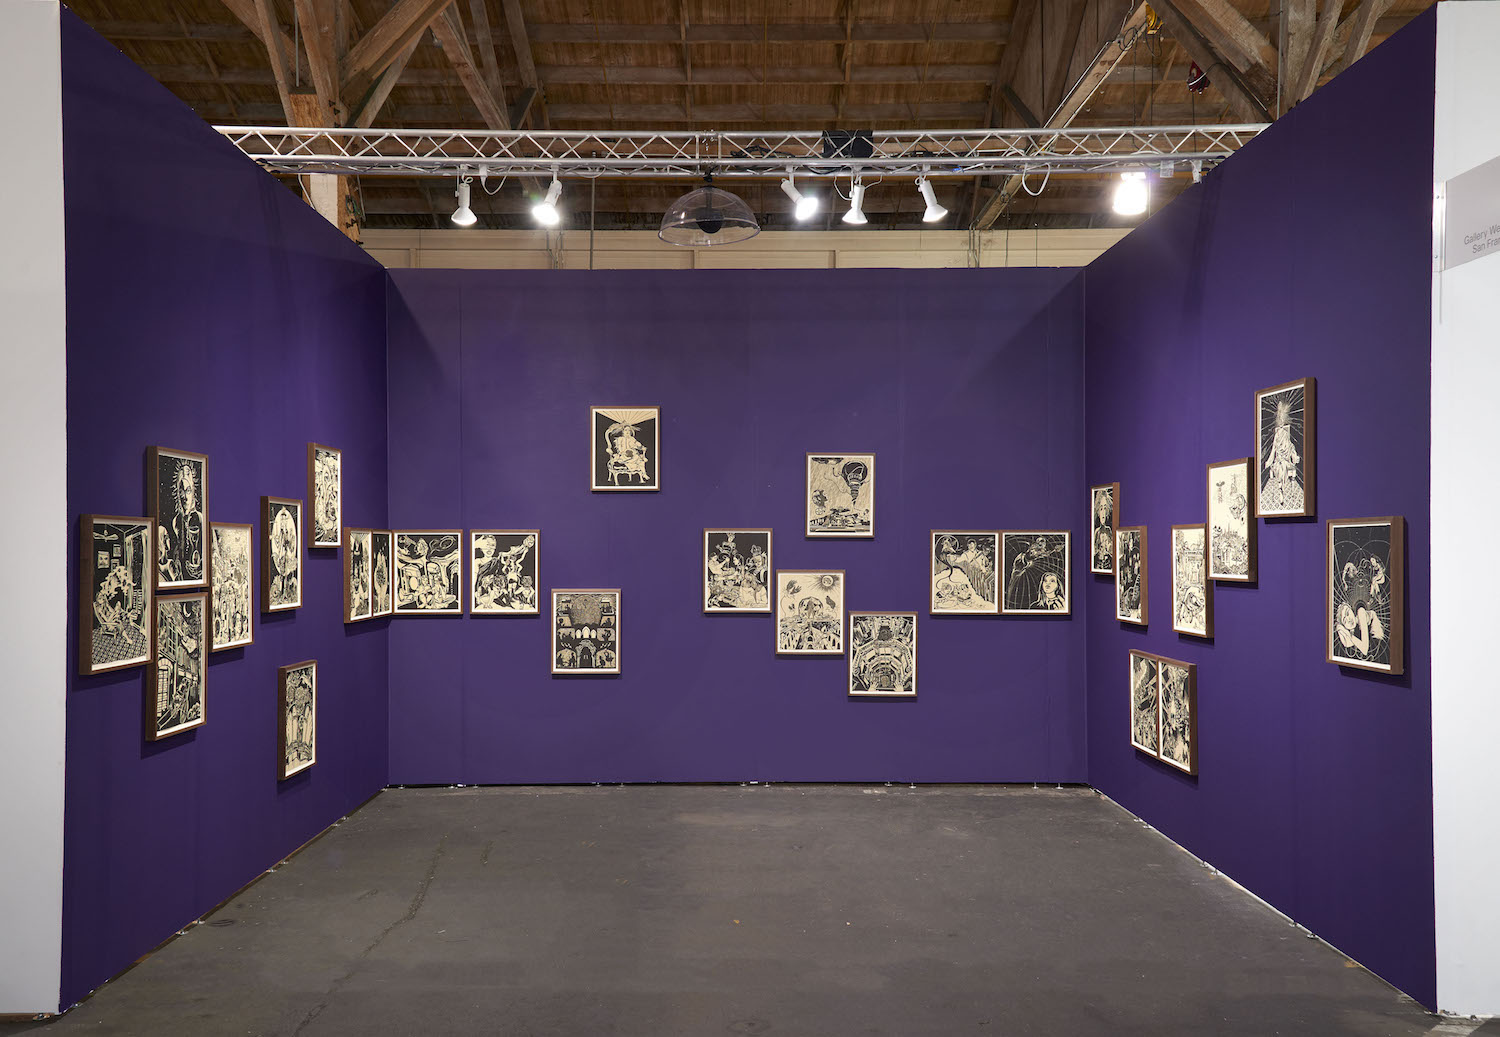 UNTITLED Art San Francisco,  installation view, Pier 35, San Francisco, CA, January 18 - January 20, 2019